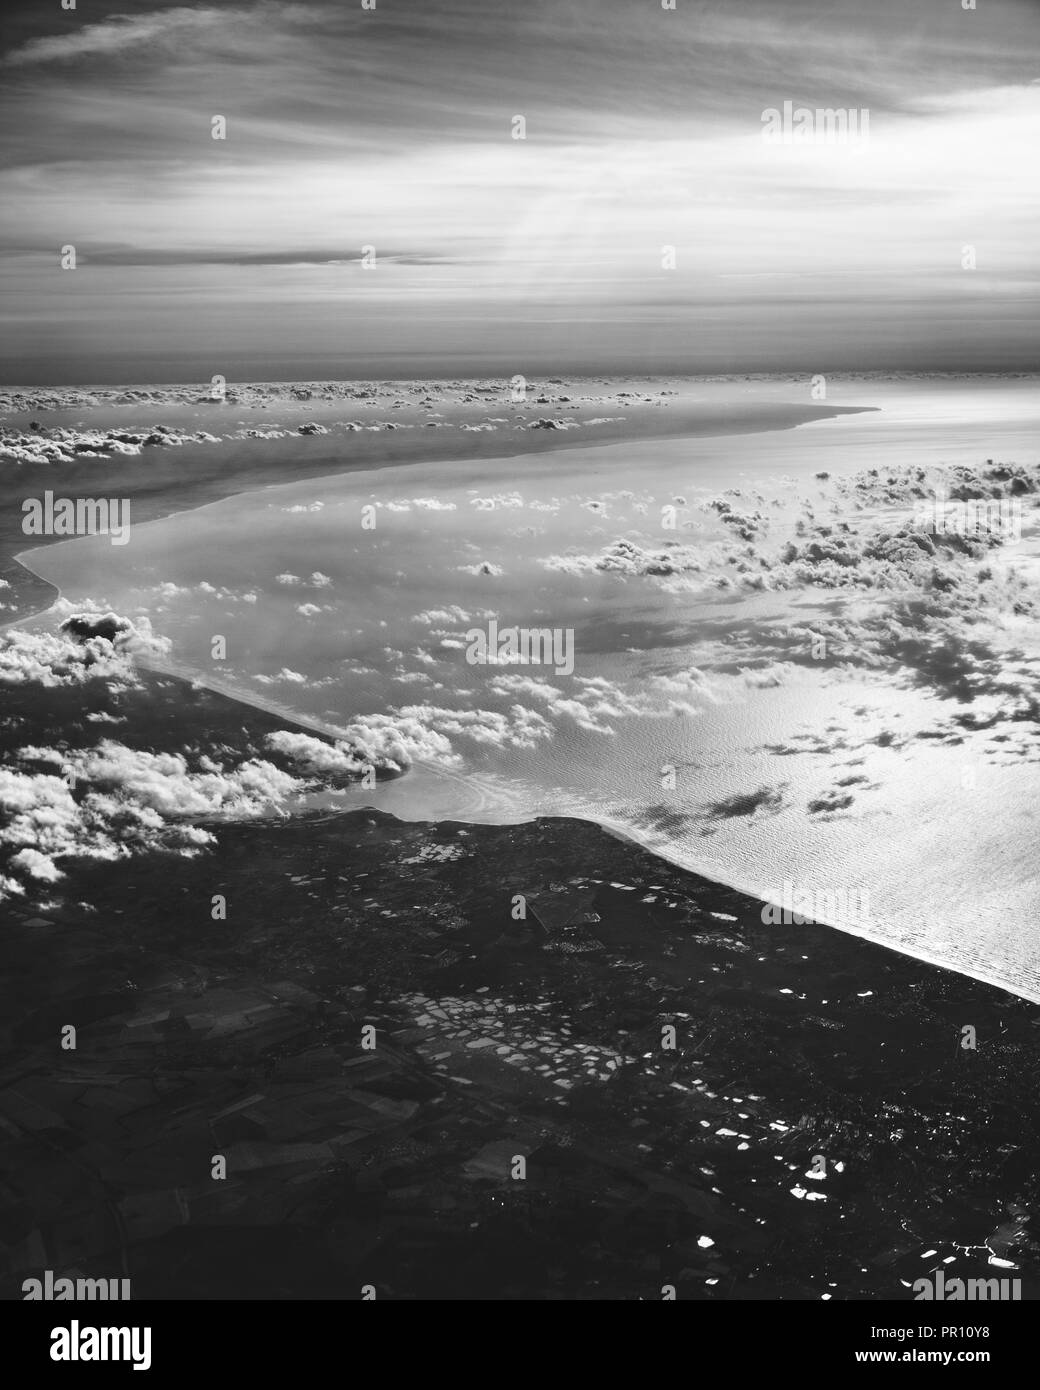 Approaching the Strait of Dover, the narrowest part of the English Channel between France and England. - Stock Image